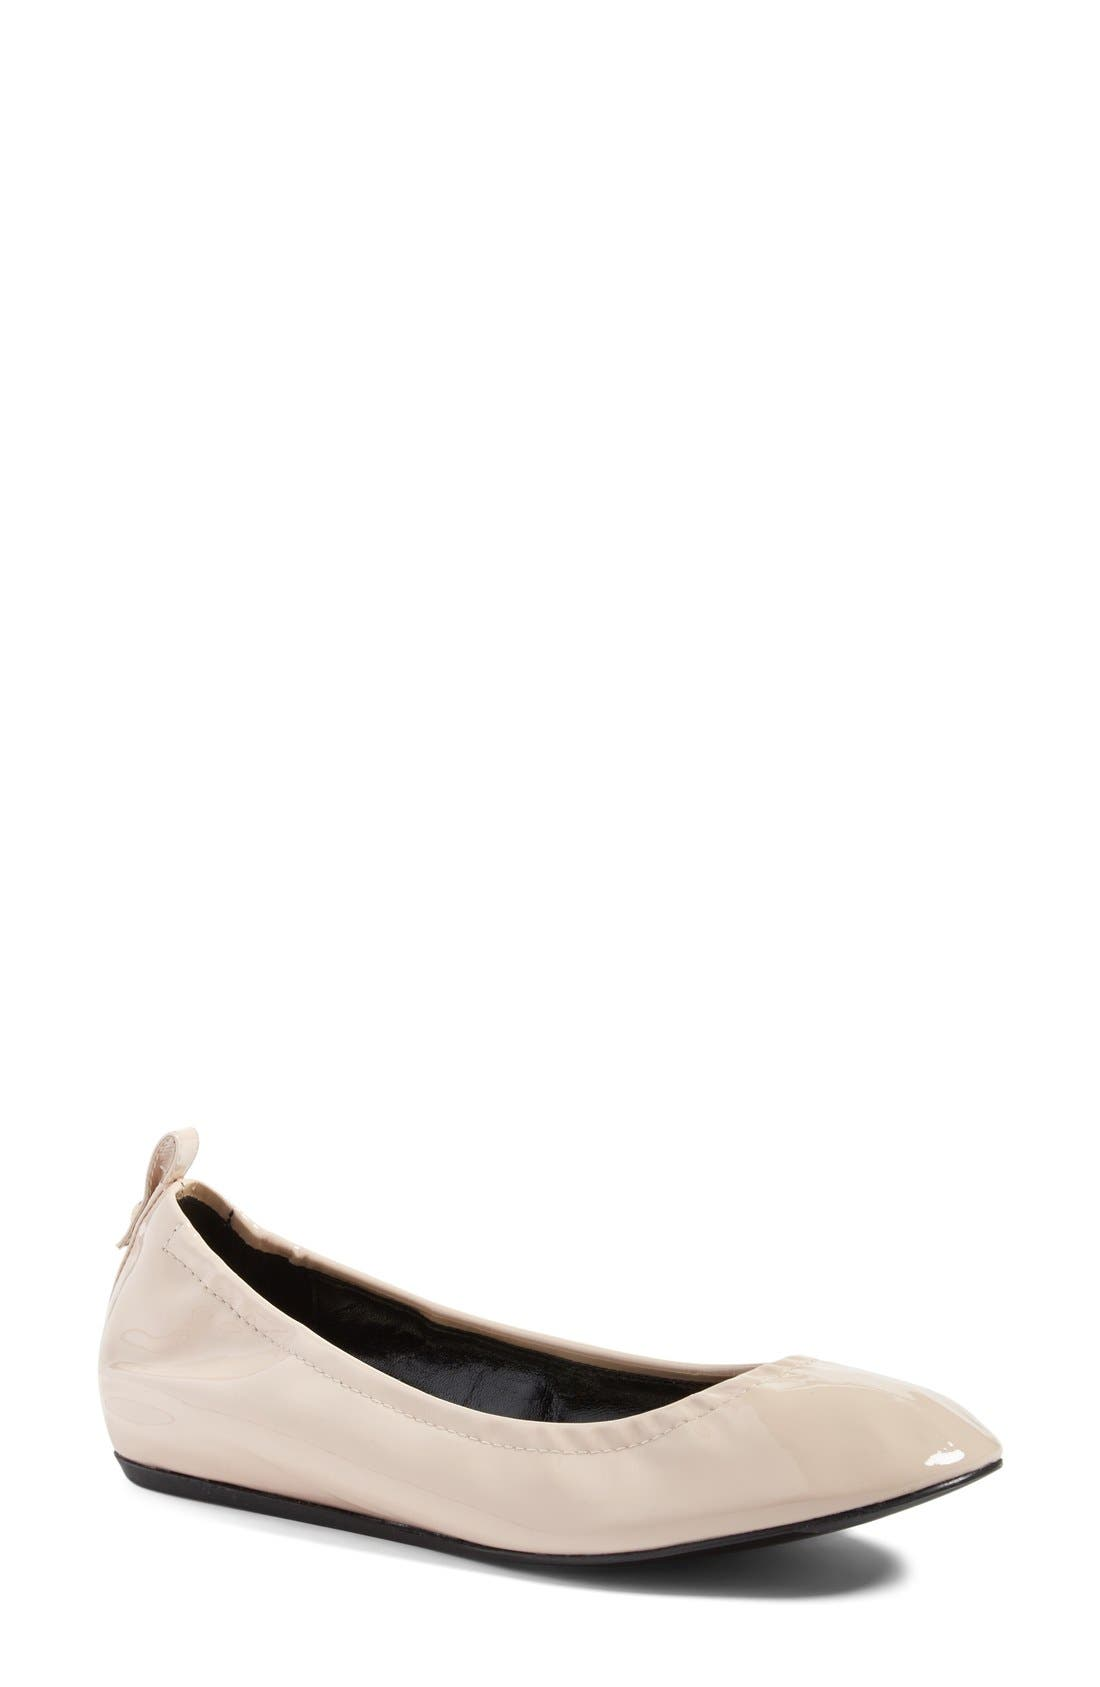 LANVIN Smooth Leather Ballet Flat